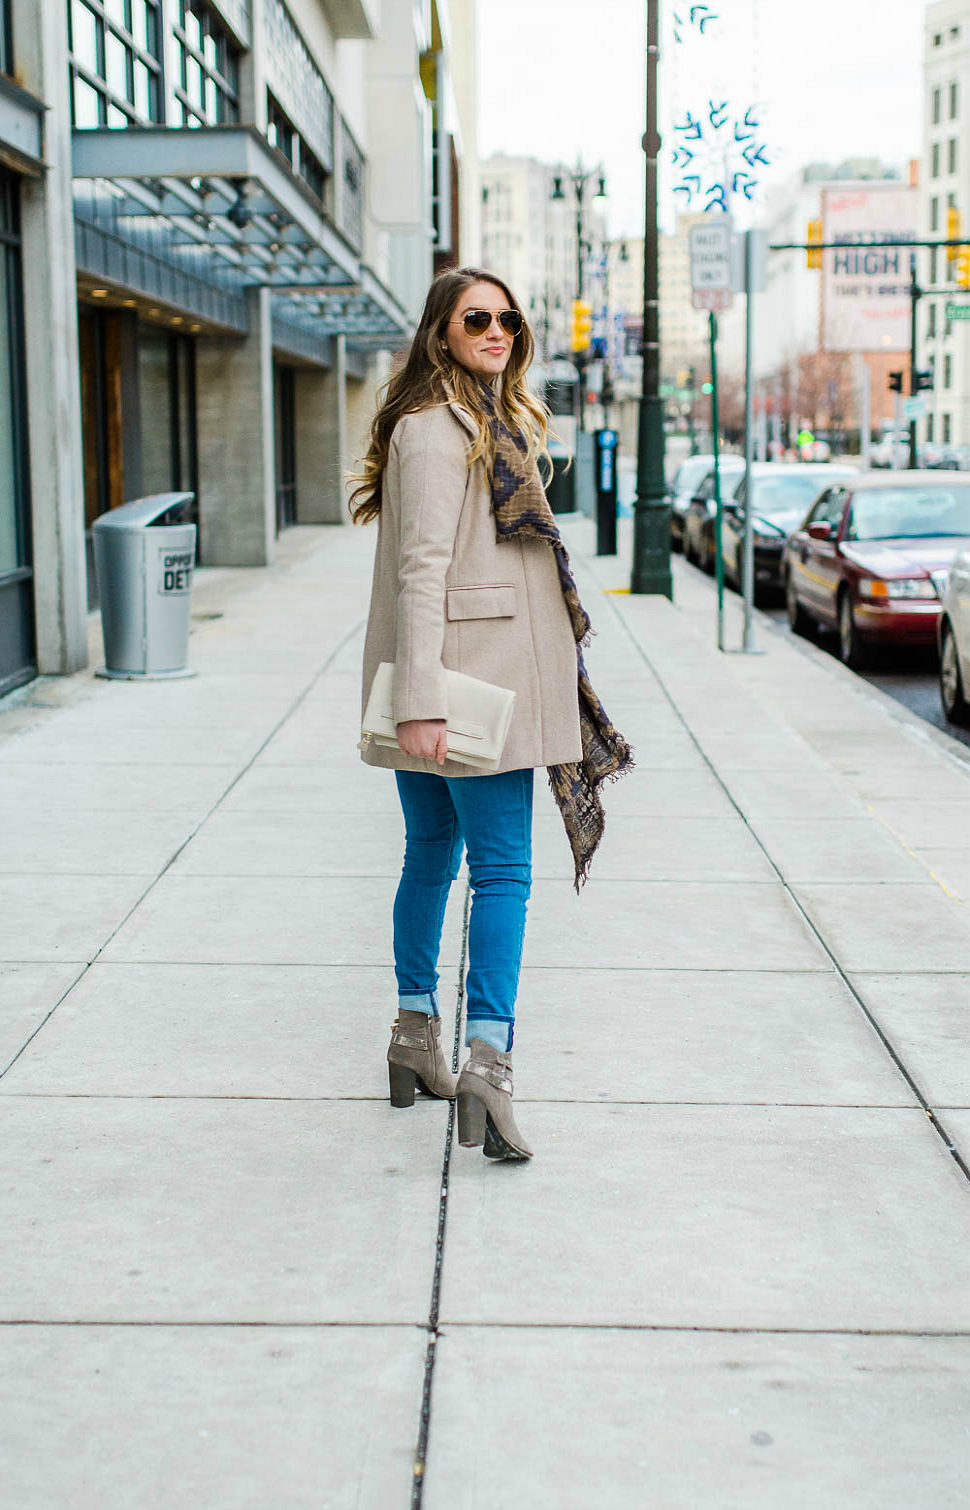 chinese-laundry-boots-hudson-jeans-jcrew-stadium-cloth-coat-aritzia-scarf-rosecitystyleguide